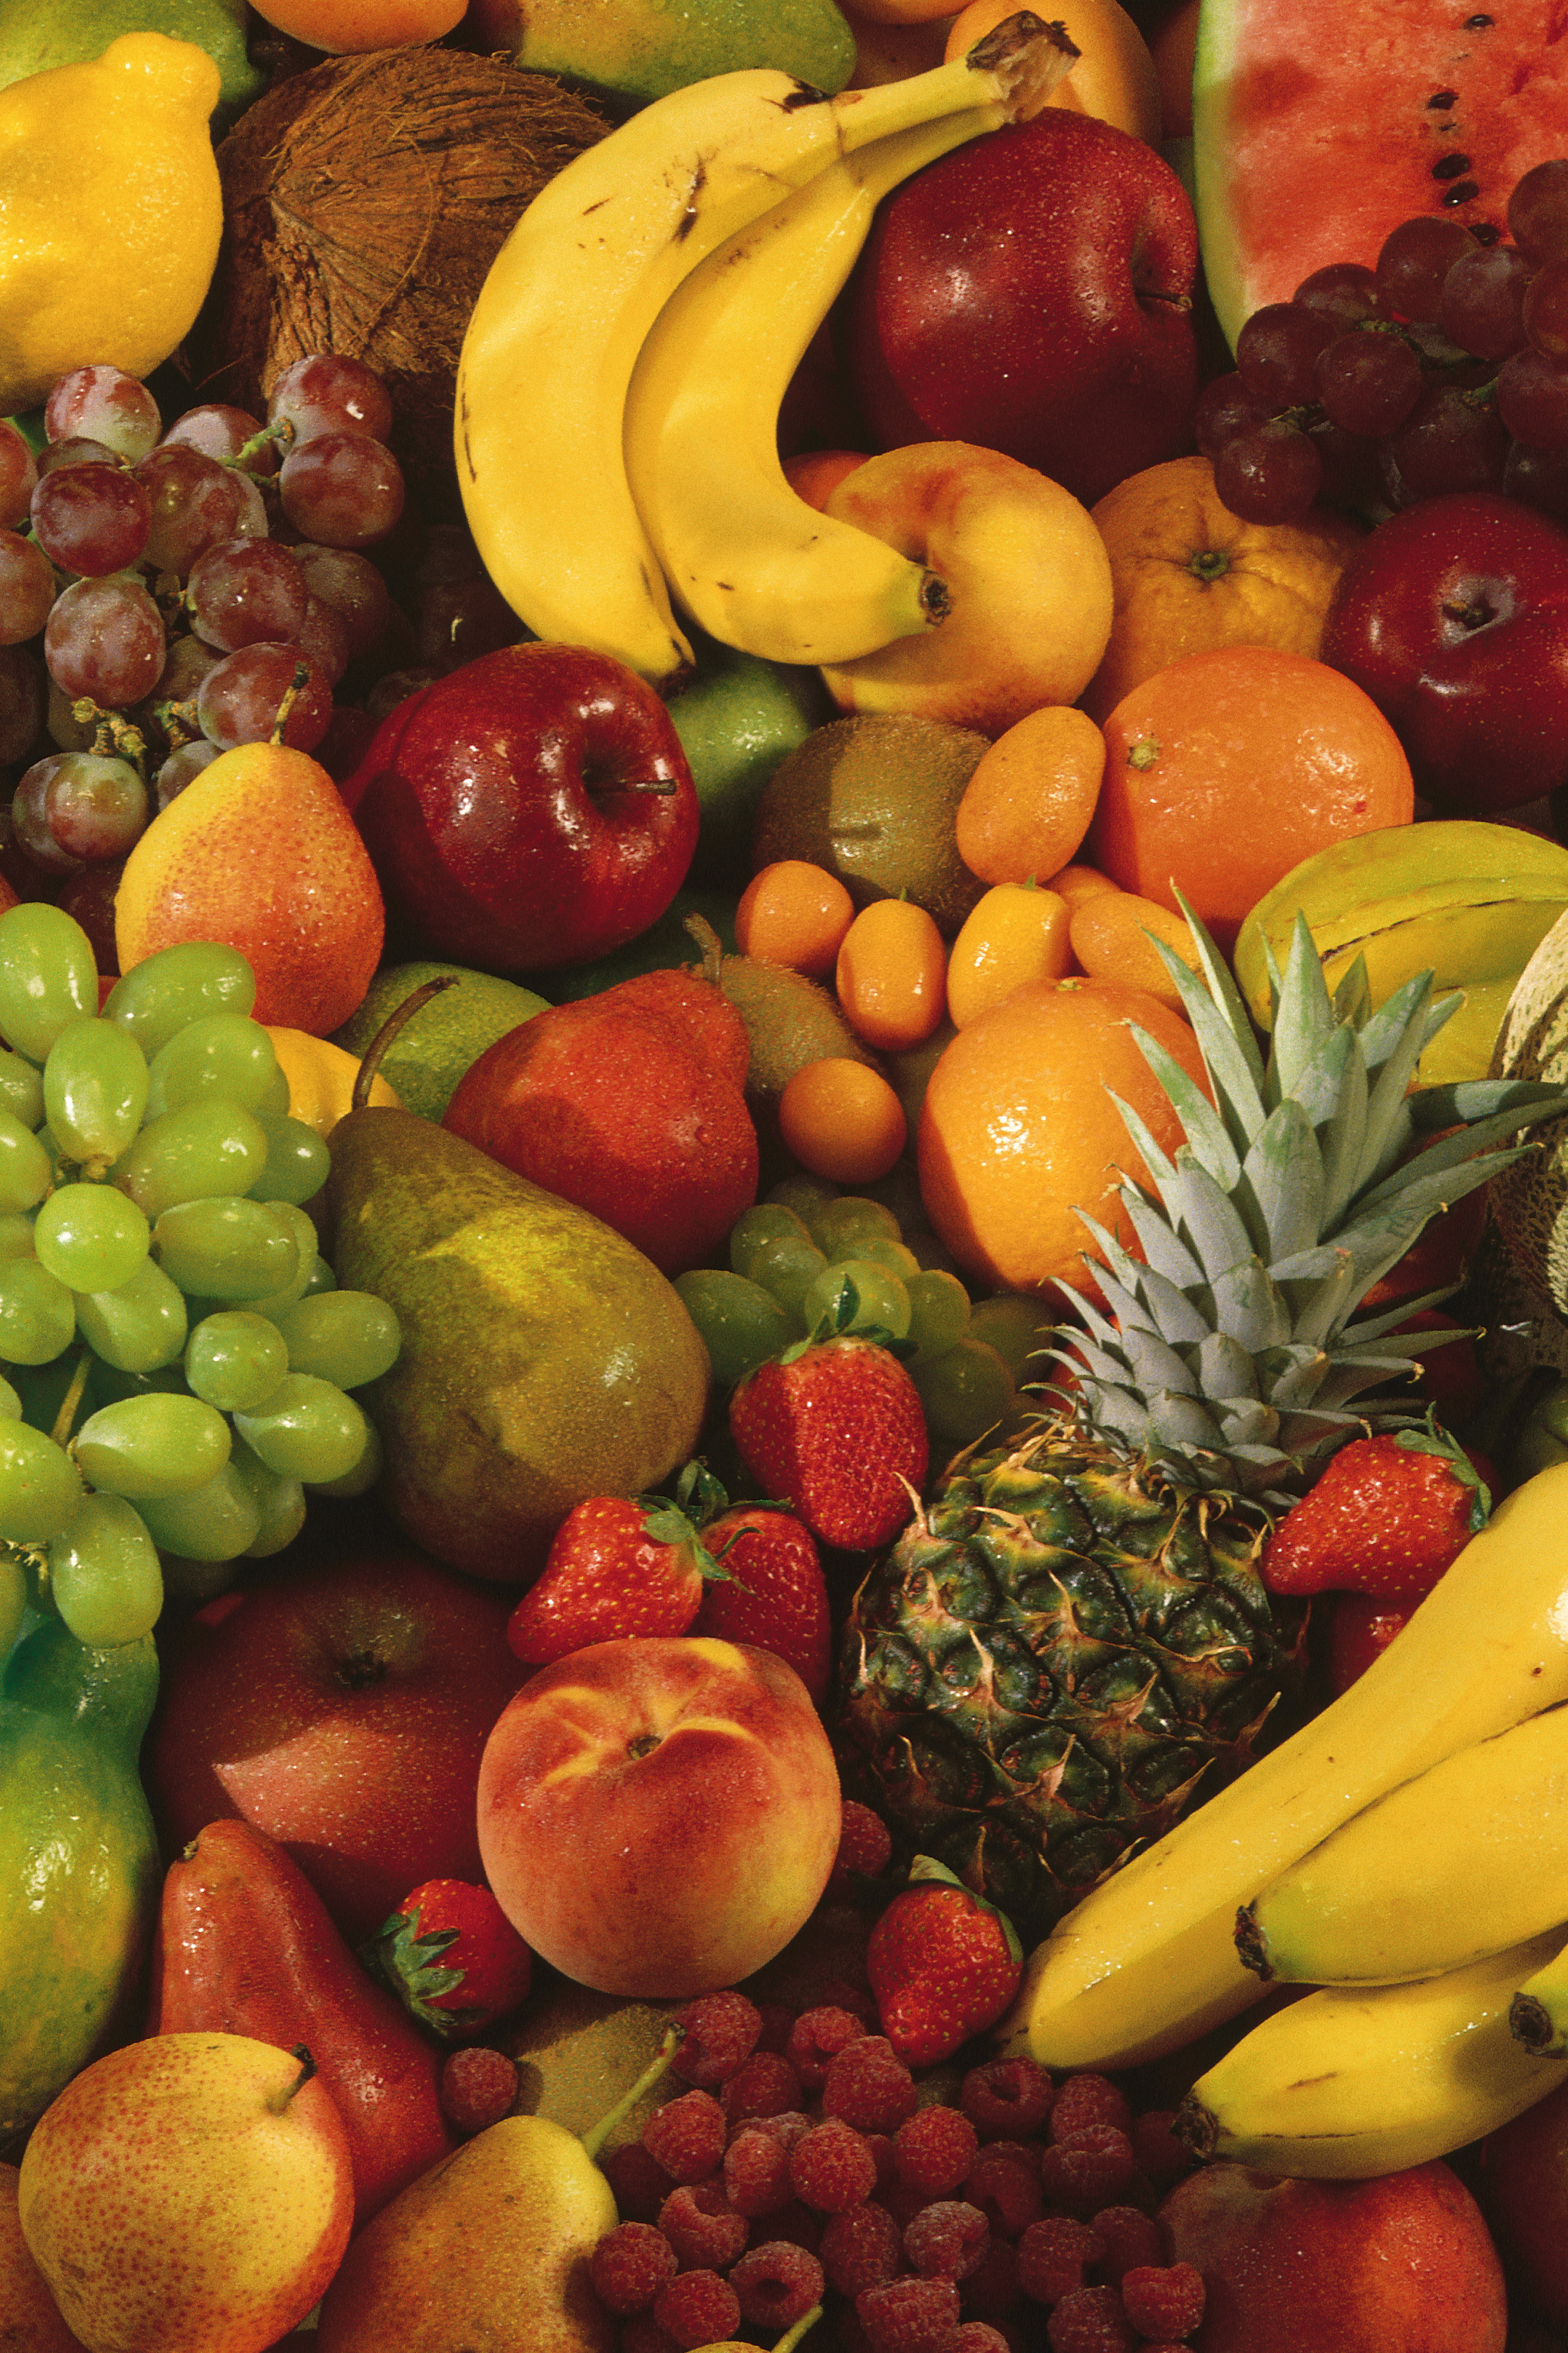 Eat a rainbow of foods to get all the antioxidants.